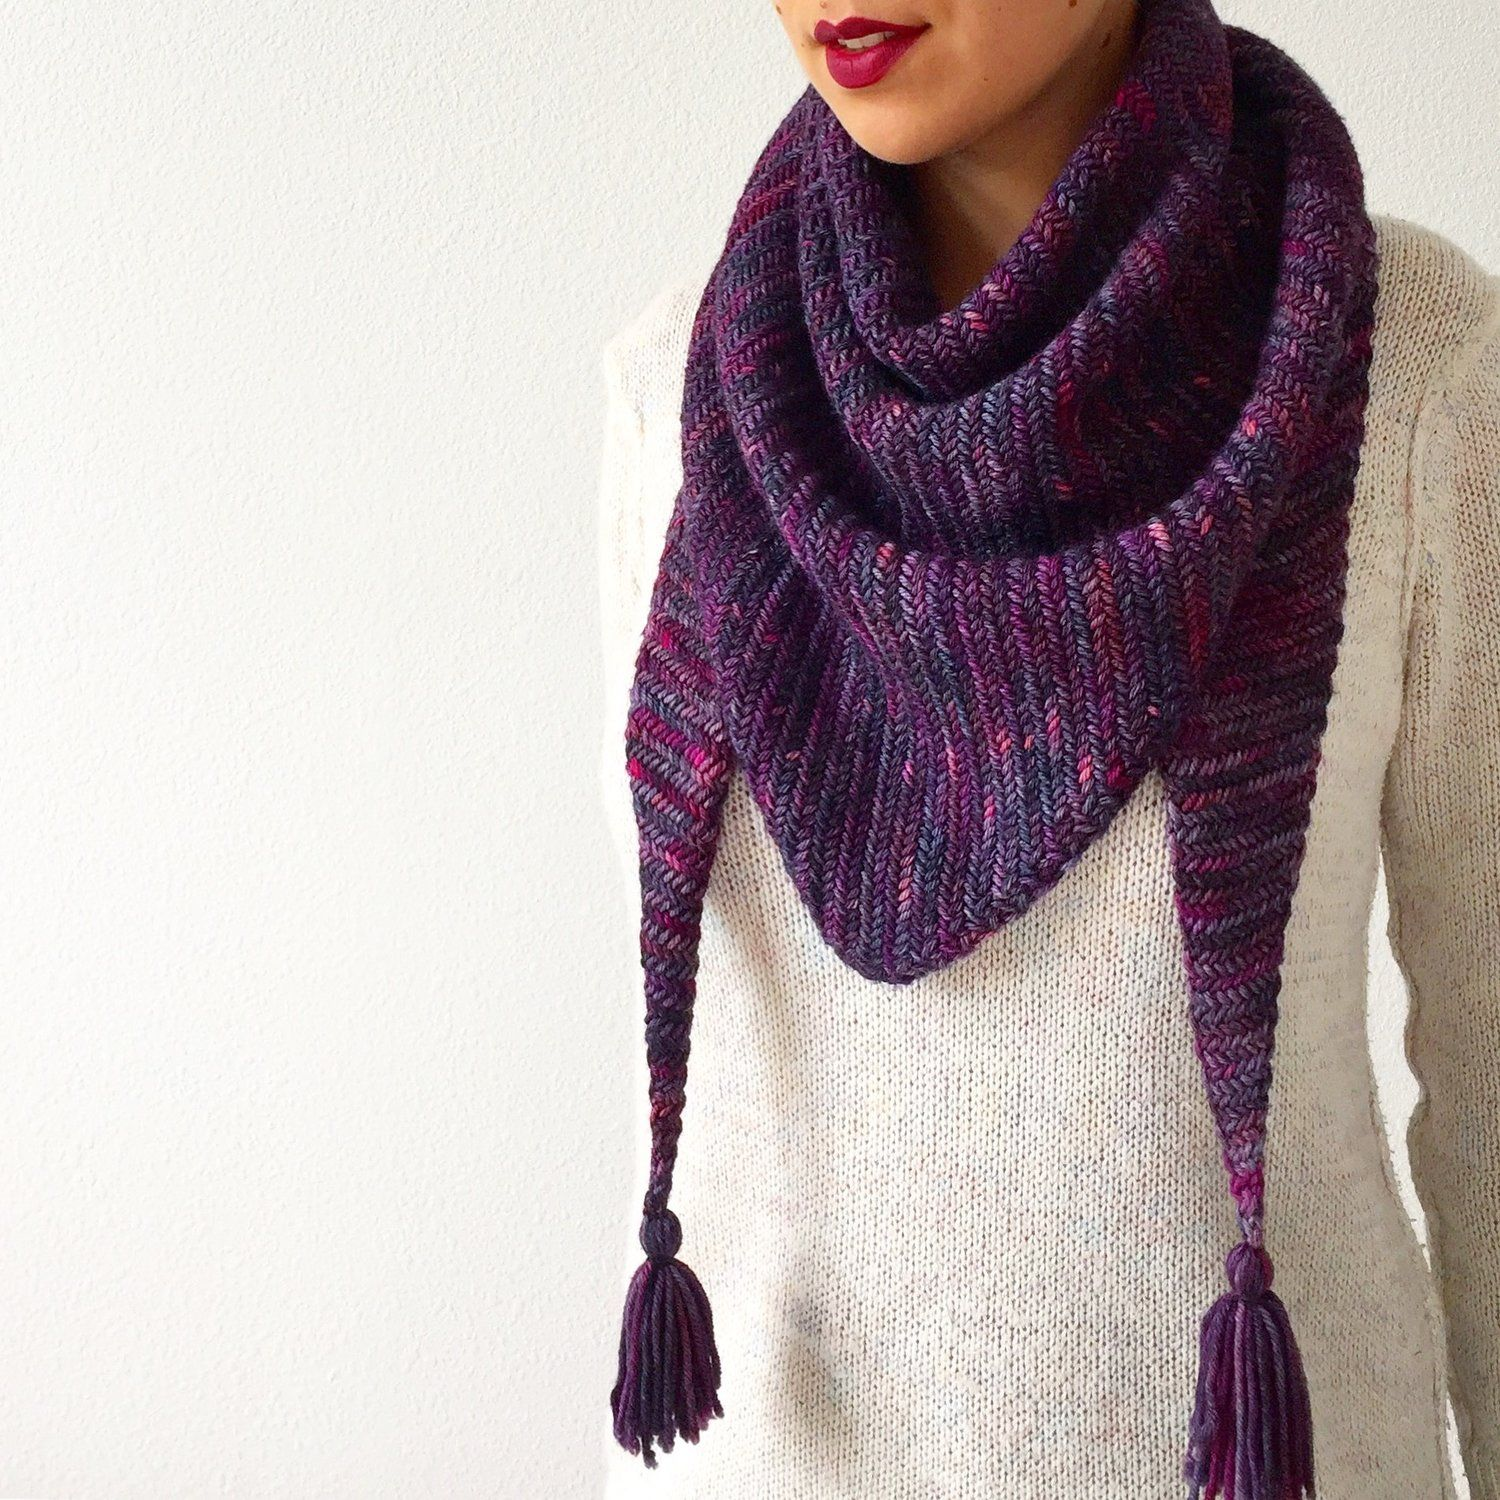 How to knit Sorceress Scarf | Knitting | Pinterest | Knitting ...